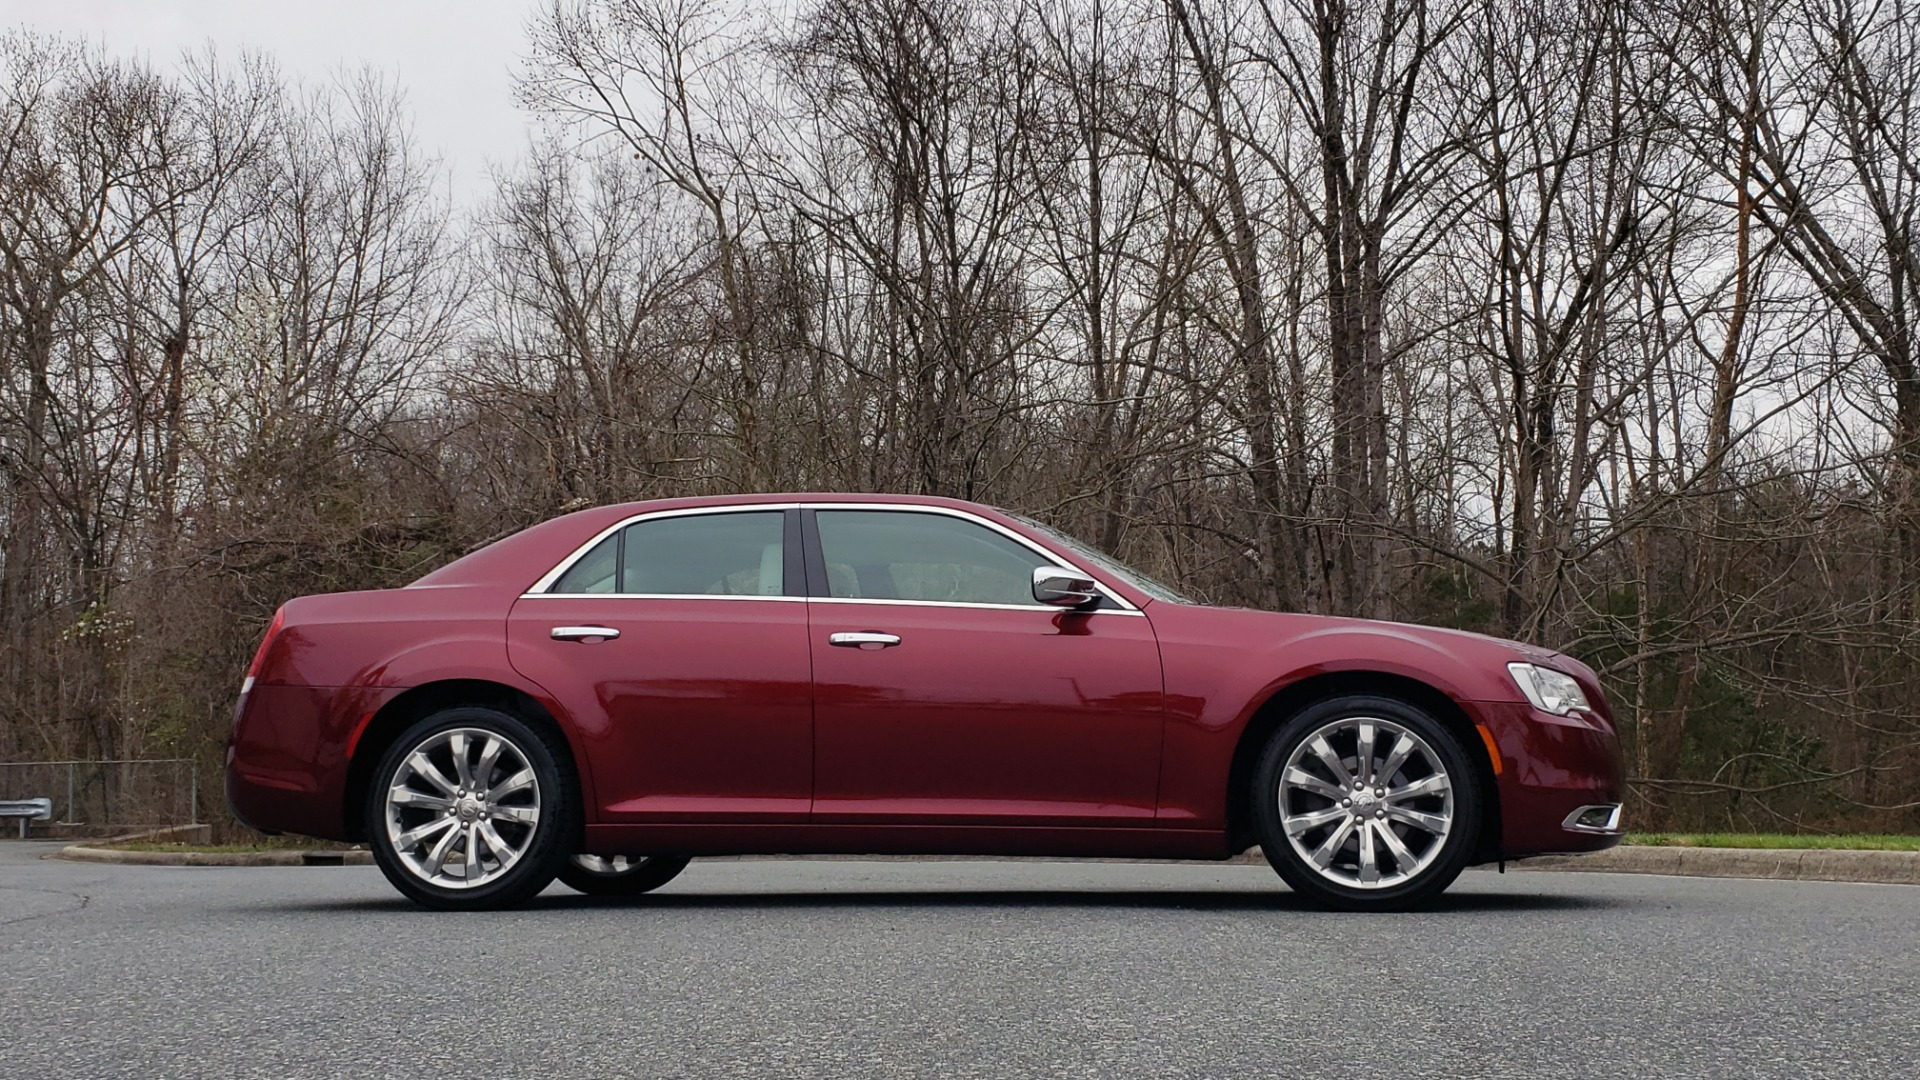 Used 2019 Chrysler 300 LIMITED / 3.6L V6 / 8-SPD AUTO / LEATHER / REARVIEW for sale Sold at Formula Imports in Charlotte NC 28227 11